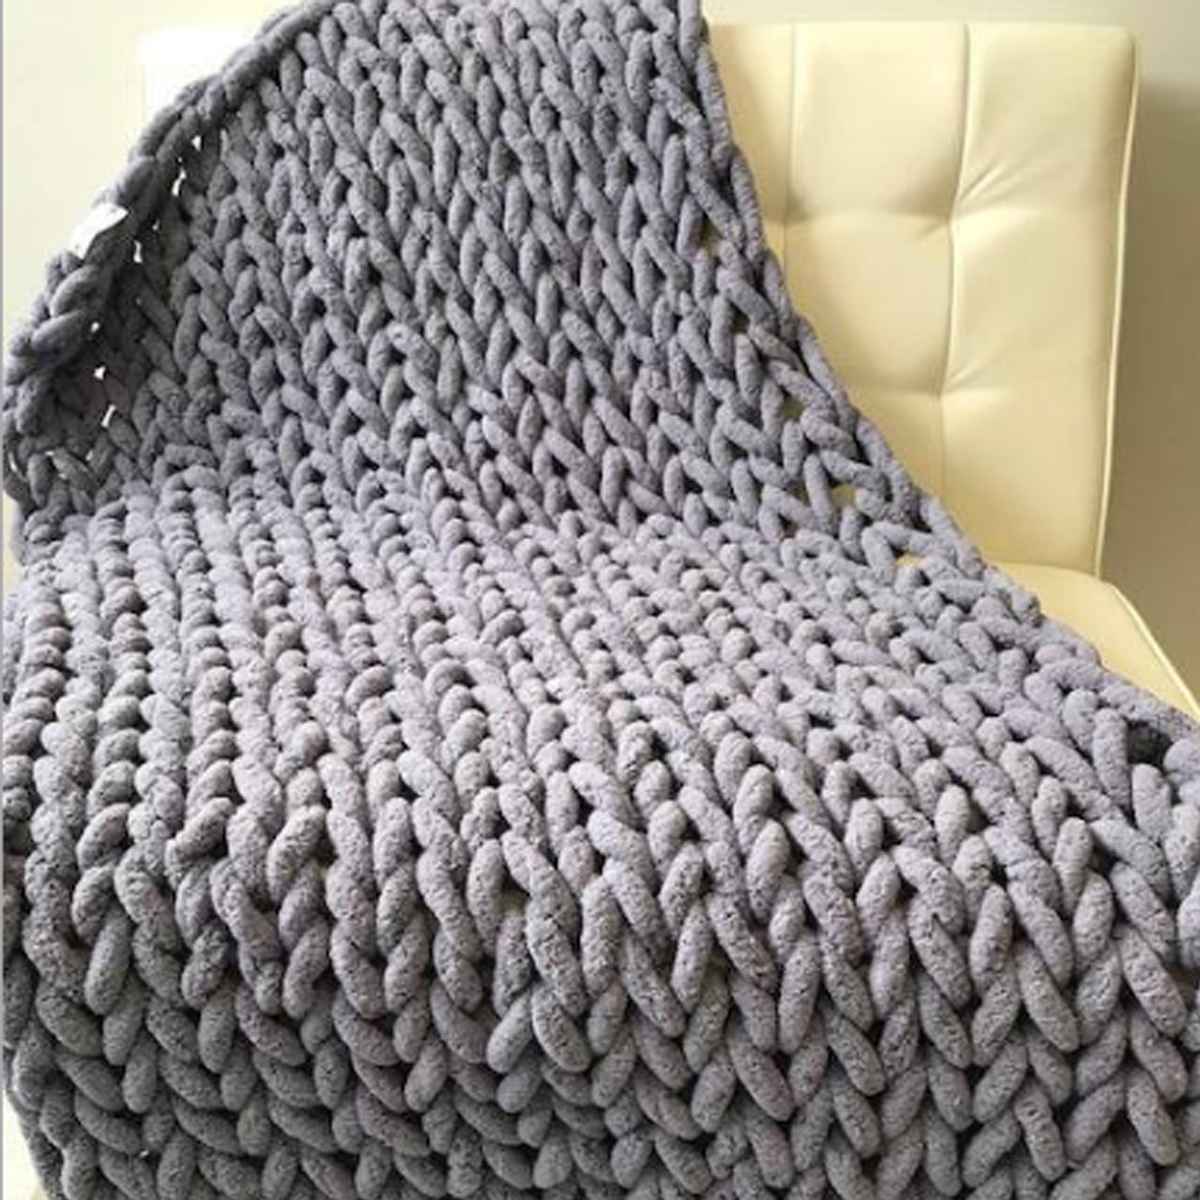 sofa cover blankets single fold out bed warm winter luxury handmade crocheted knitted 5 colors thick thread